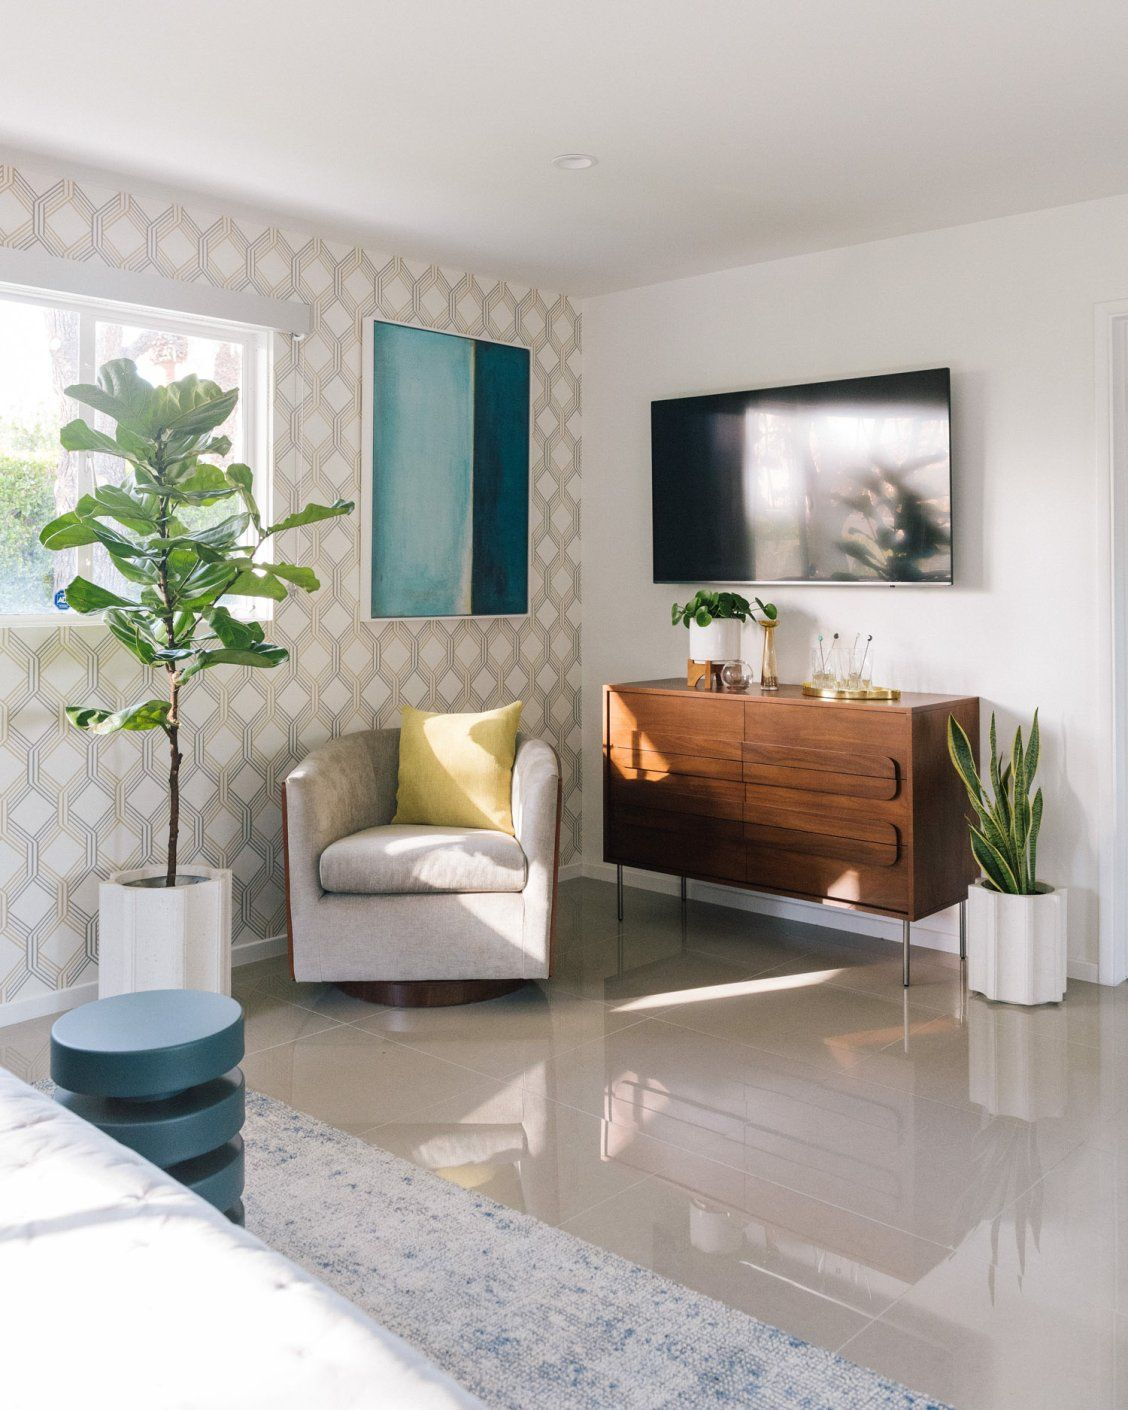 Living The Modern Life In Palm Springs Front Main Living Room Inspo Family Living Rooms Palm Springs Interior Design #palm #springs #living #room